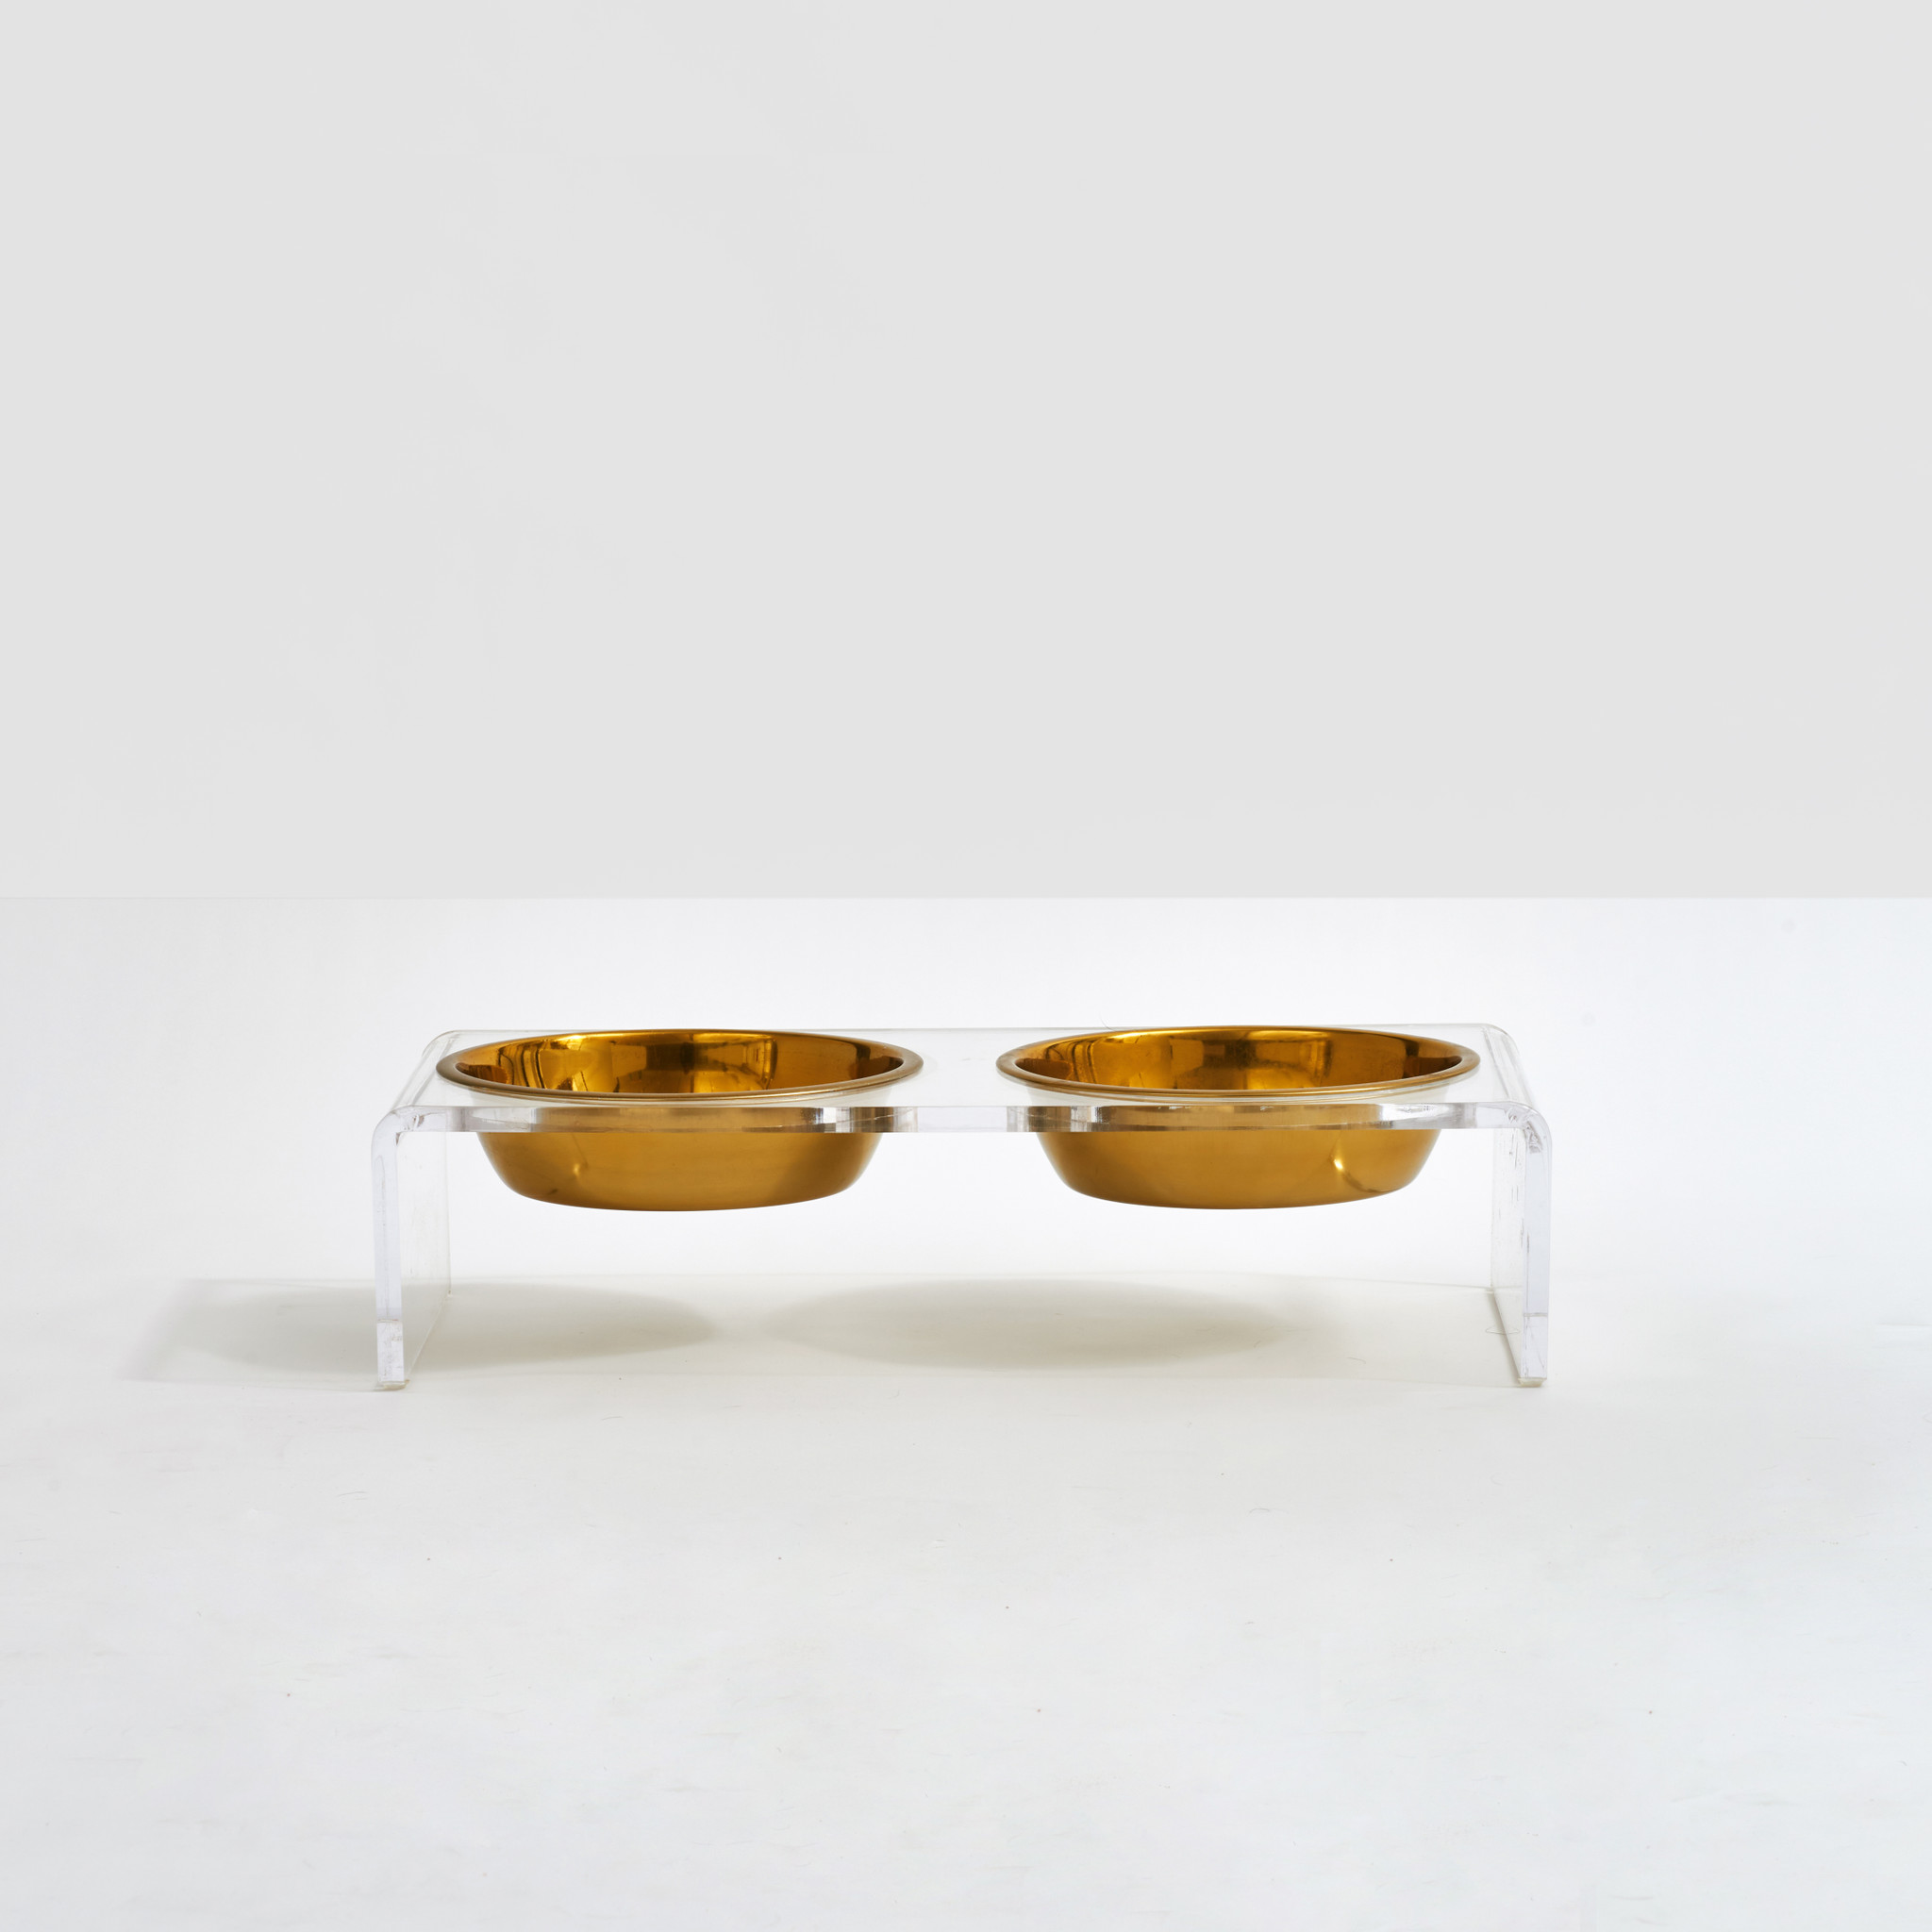 Clear Acrylic Double Bowl Pet Feeder with Gold Bowls